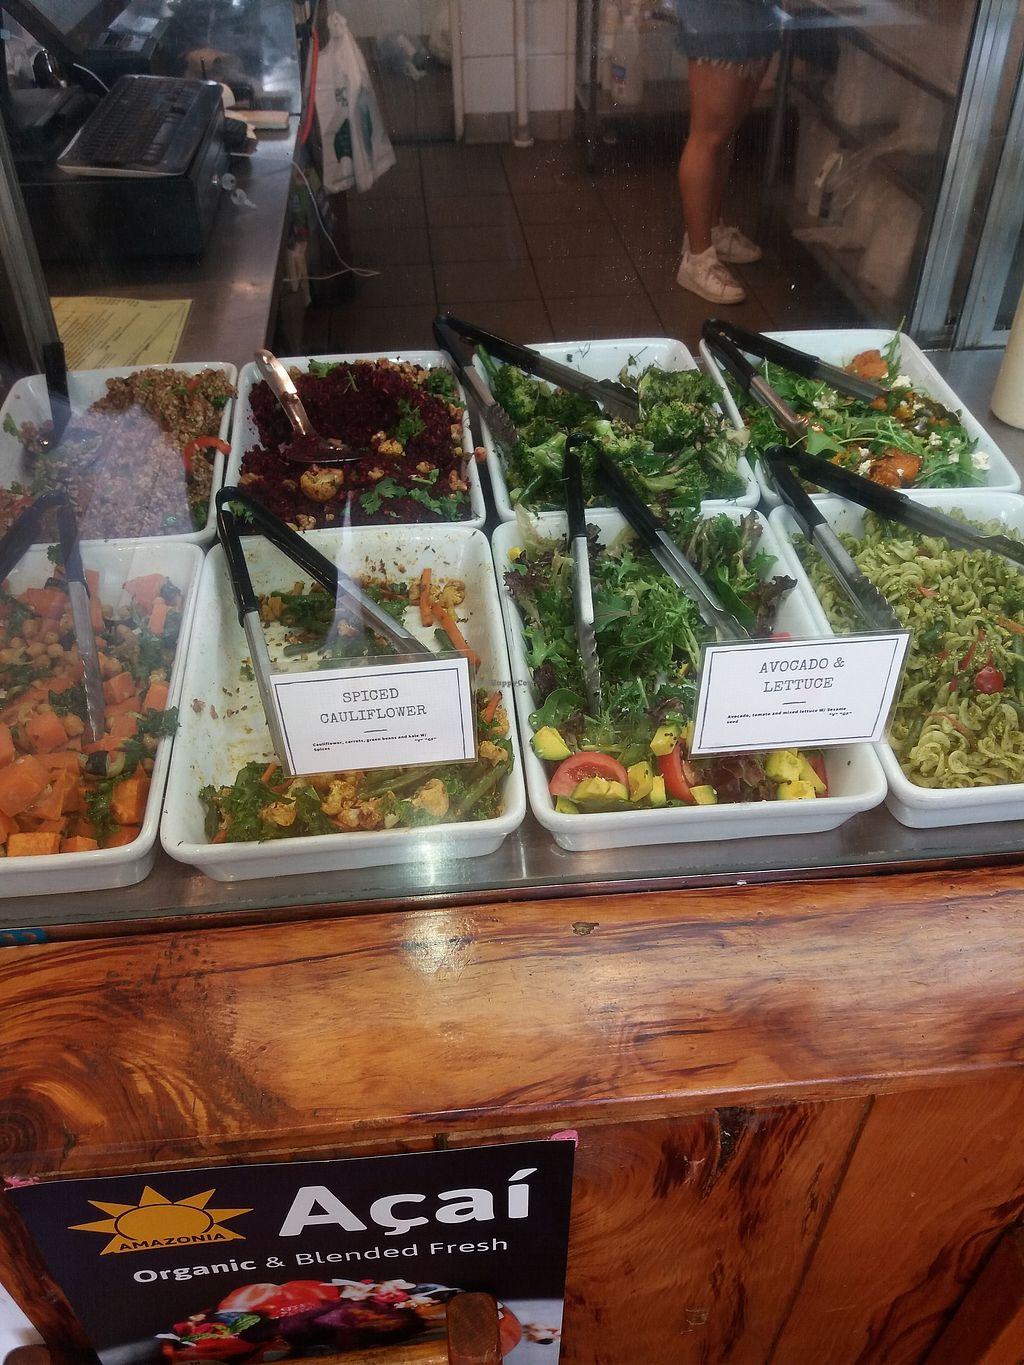 "Photo of Heart and Soul Organic Chai Cafe  by <a href=""/members/profile/veganvirtues"">veganvirtues</a> <br/>Salad bar <br/> February 19, 2018  - <a href='/contact/abuse/image/24897/361131'>Report</a>"